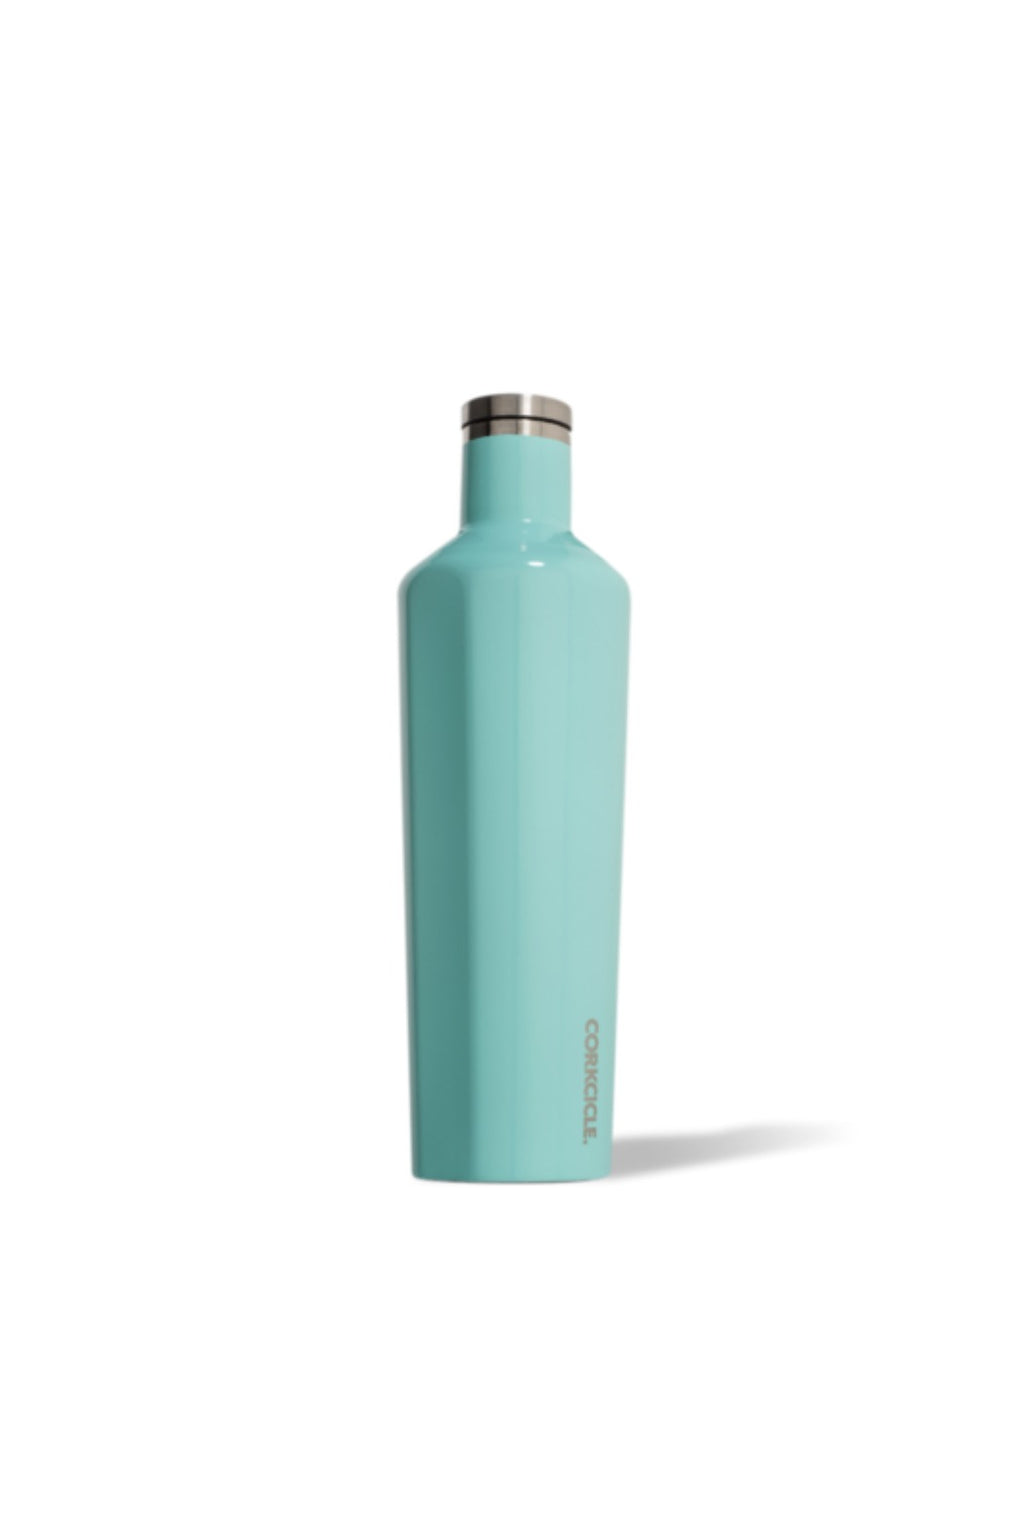 Corkcicle 25 oz. Canteen in Gloss Turquoise